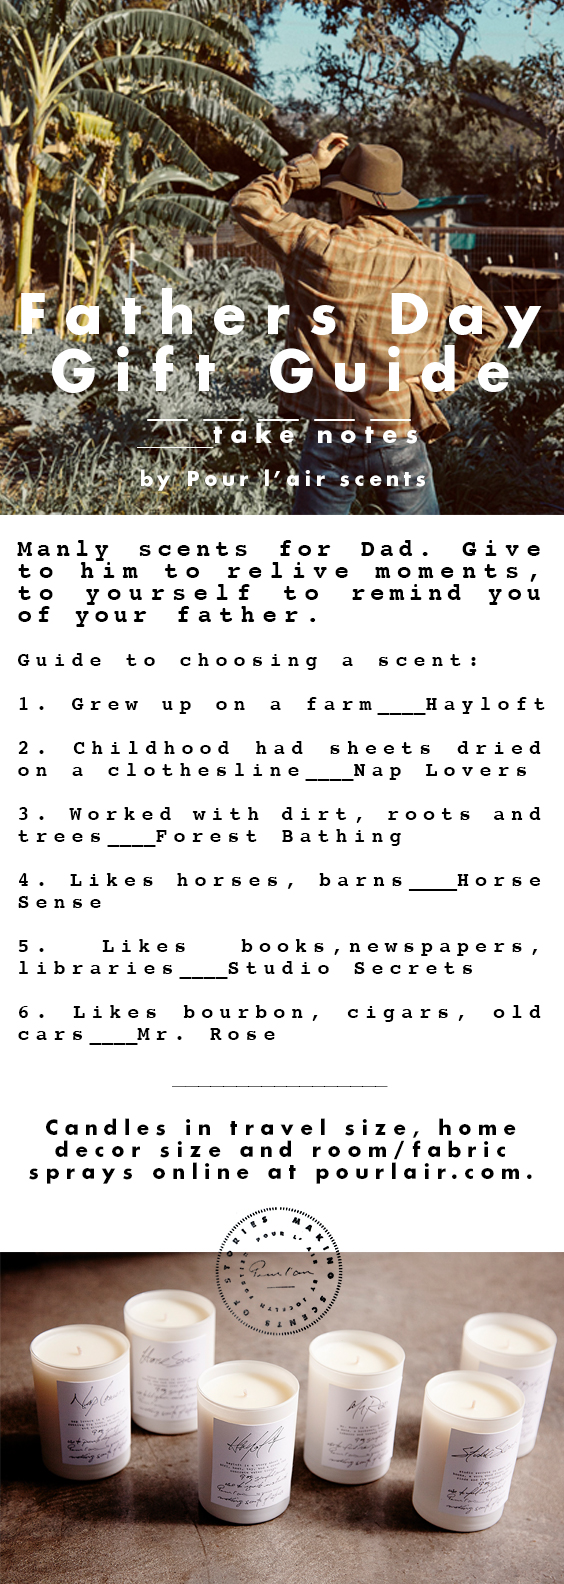 Pour-l'air-Fathers-Day-Gift-Guide.jpg